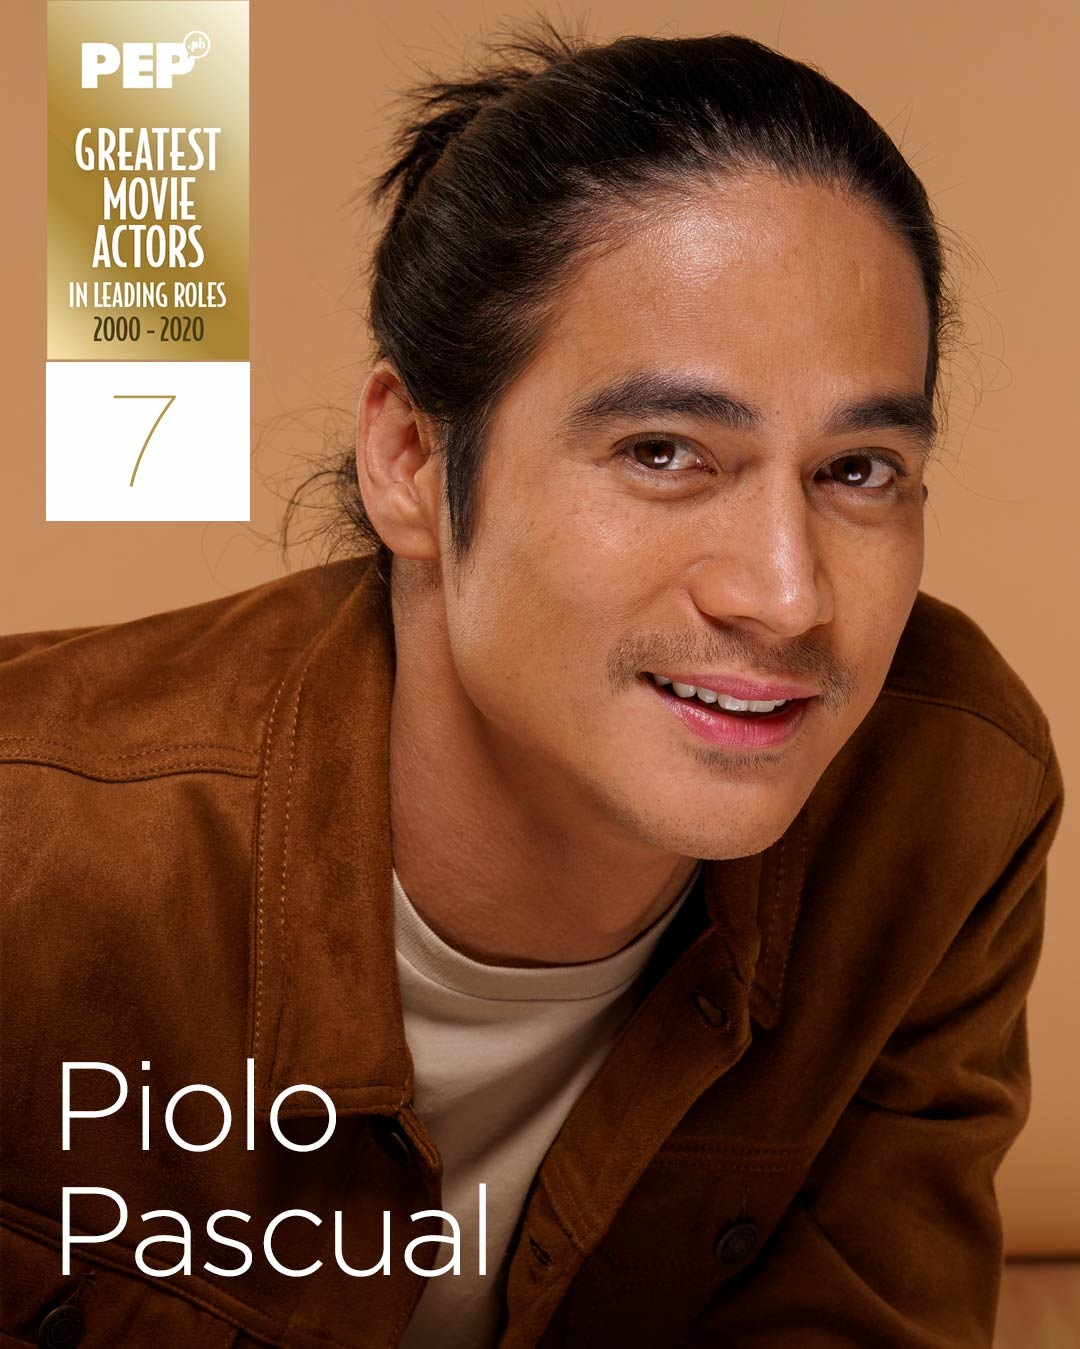 Piolo Pascual, 15 Greatest Movie Actors in Leading Roles